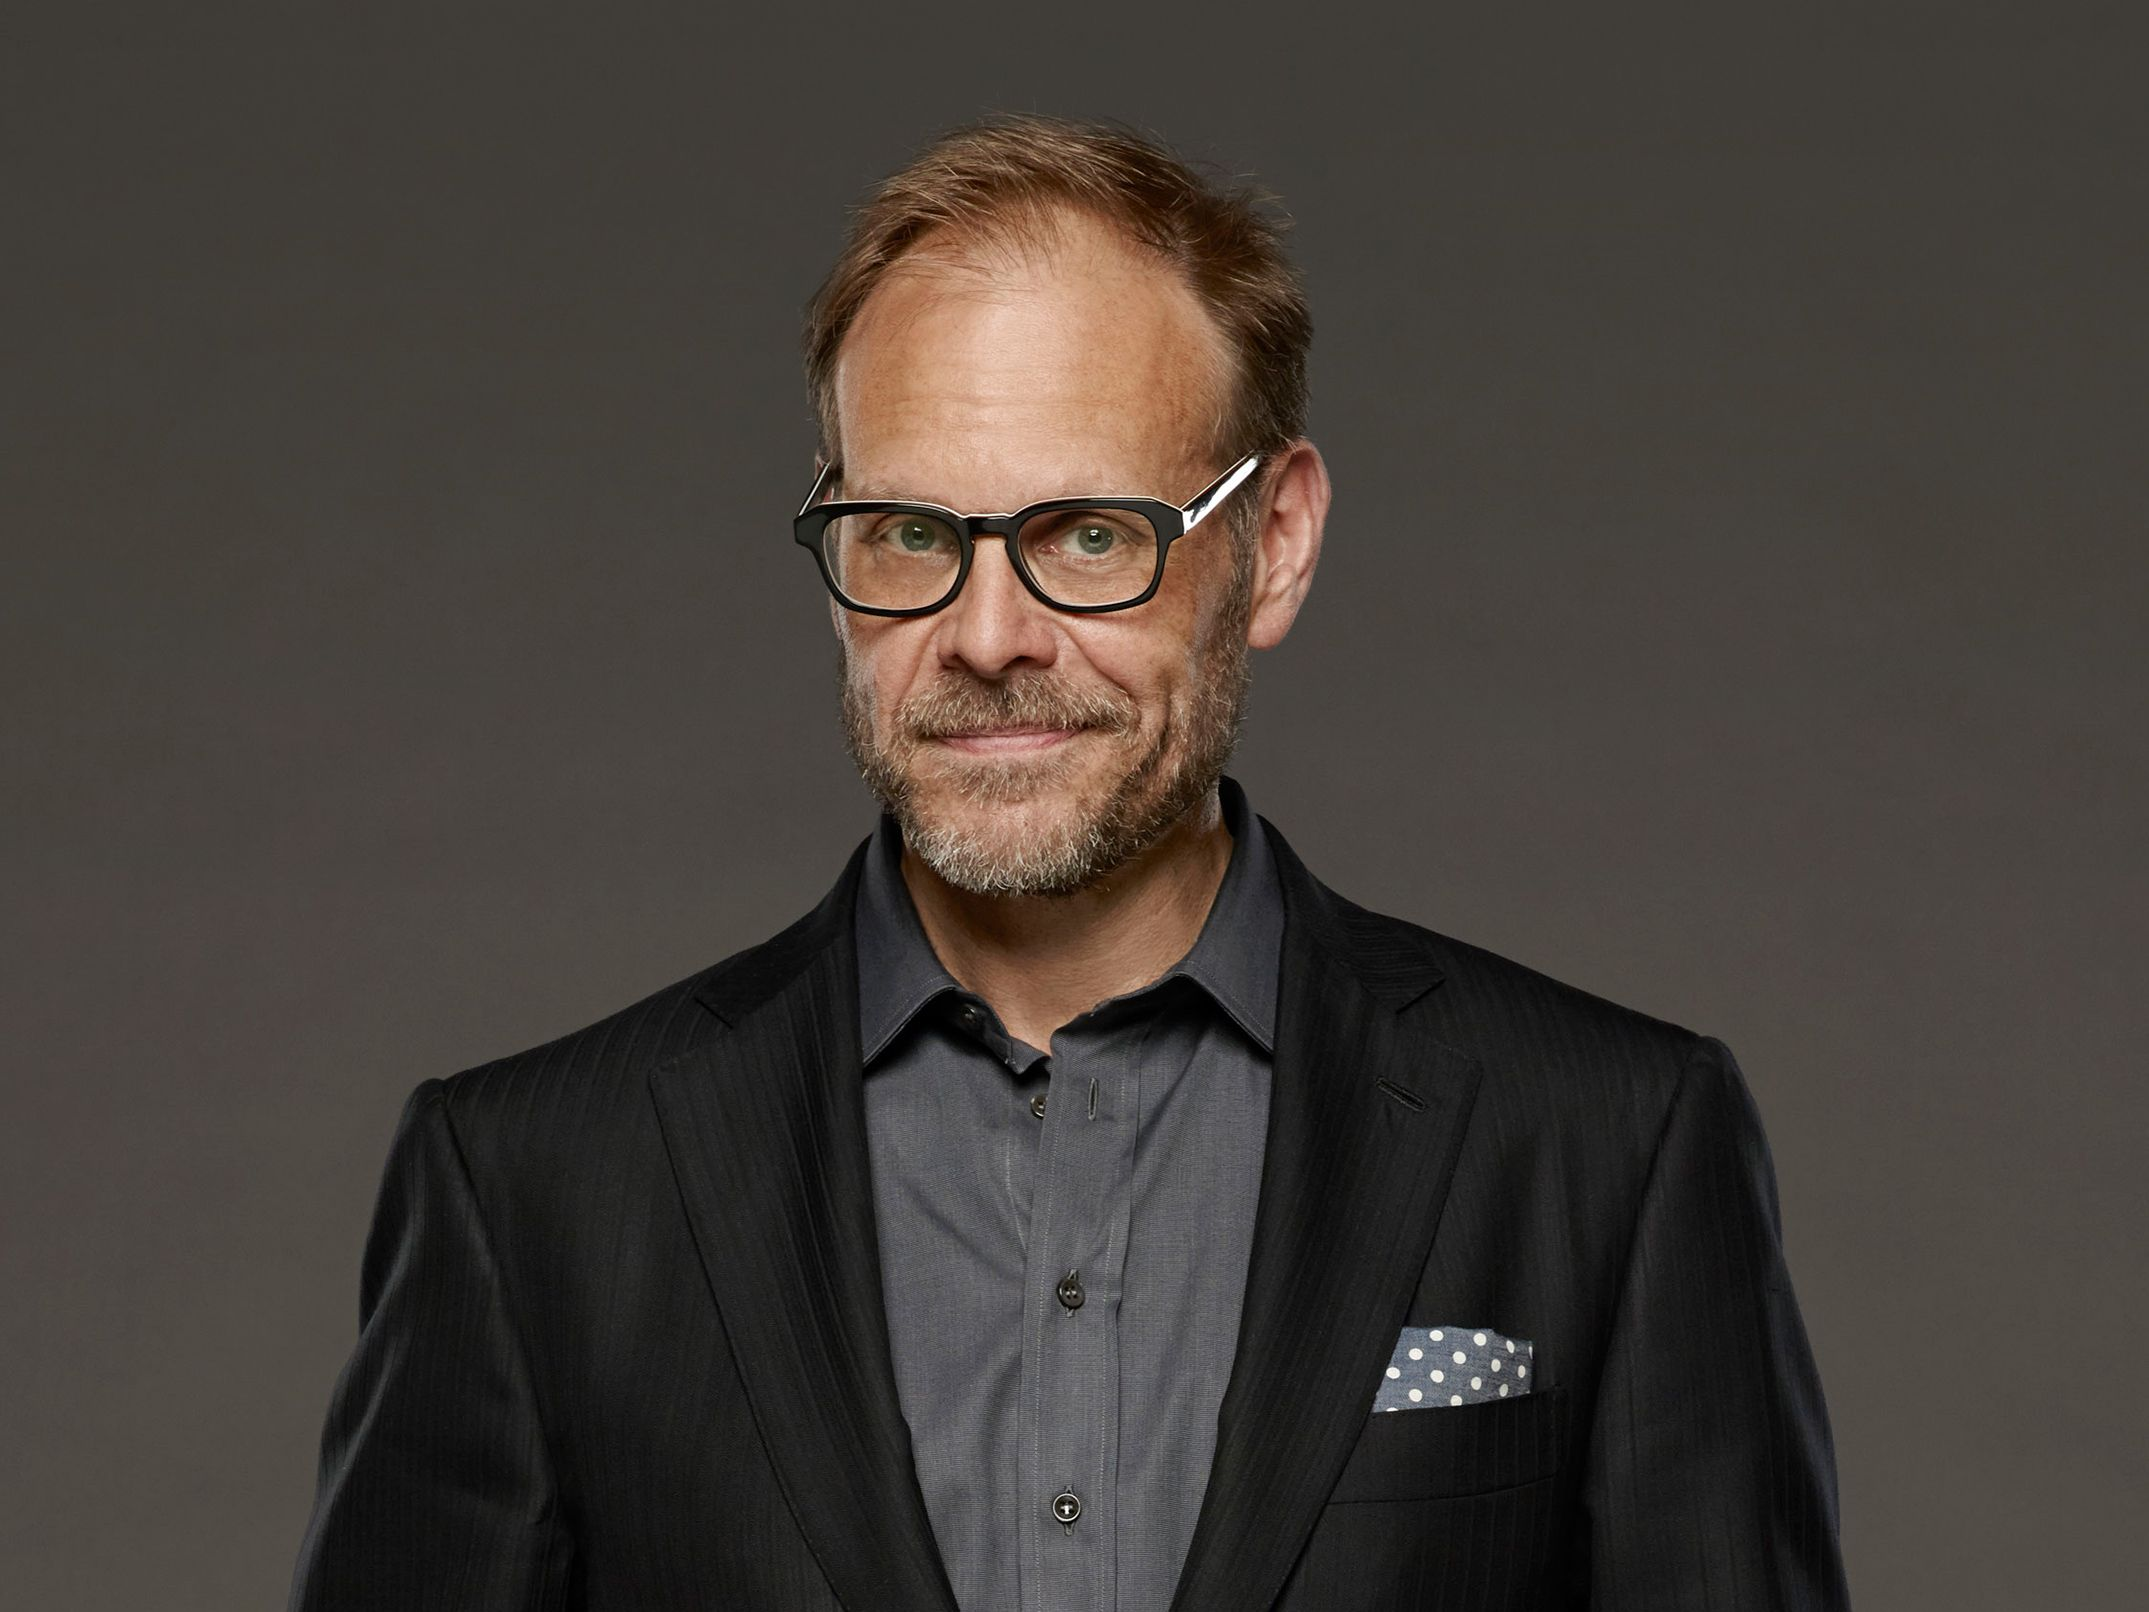 Charmant Alton Brown, Host Of Good Eats, Appears Regularly On Food Network Star,  Iron Chef America And Cutthroat Kitchen. Find His Recipes And More On Food  Network.